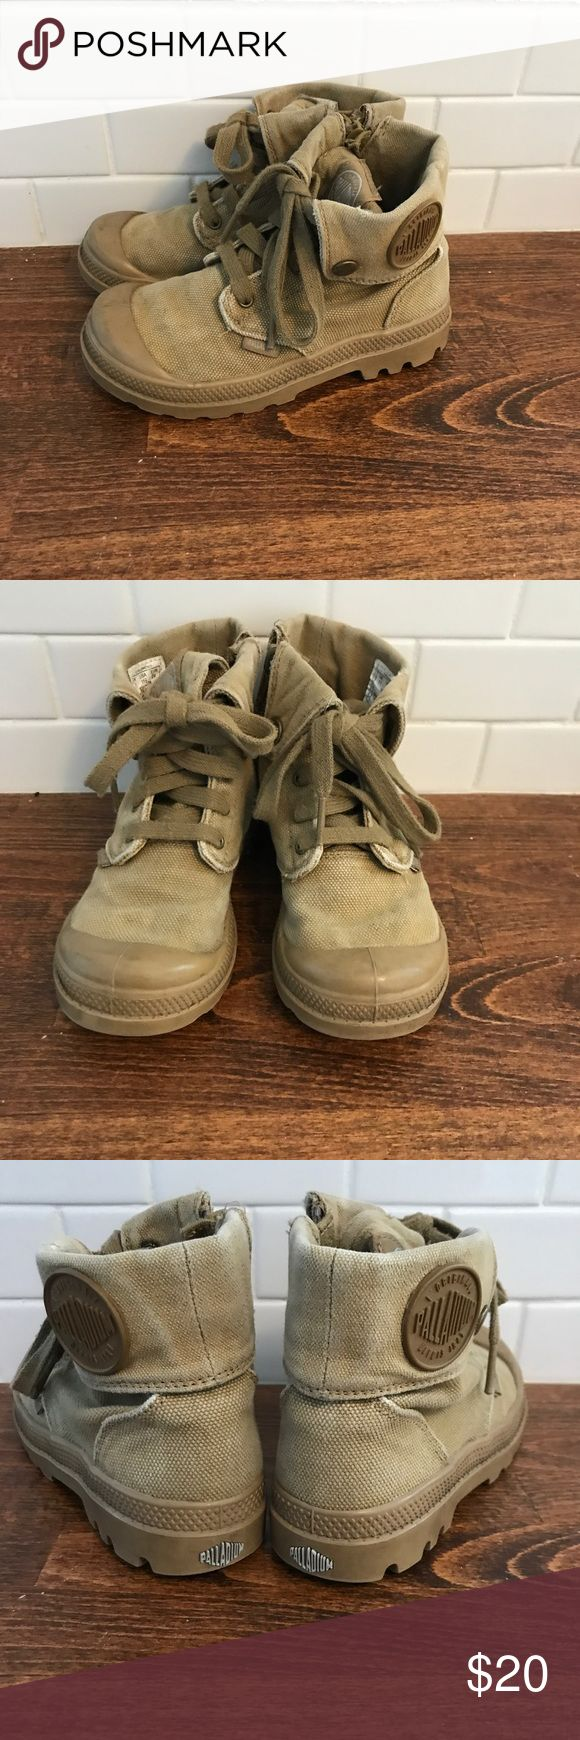 Palladium kids 11.5 Kids Palladium size 11.5 in a kaki color. These are the cutest shoes ever! My little girl wore them, but they would also be adorable on a boy! So easy to put on, zippers on the side. And go with everything! Palladium Shoes Boots